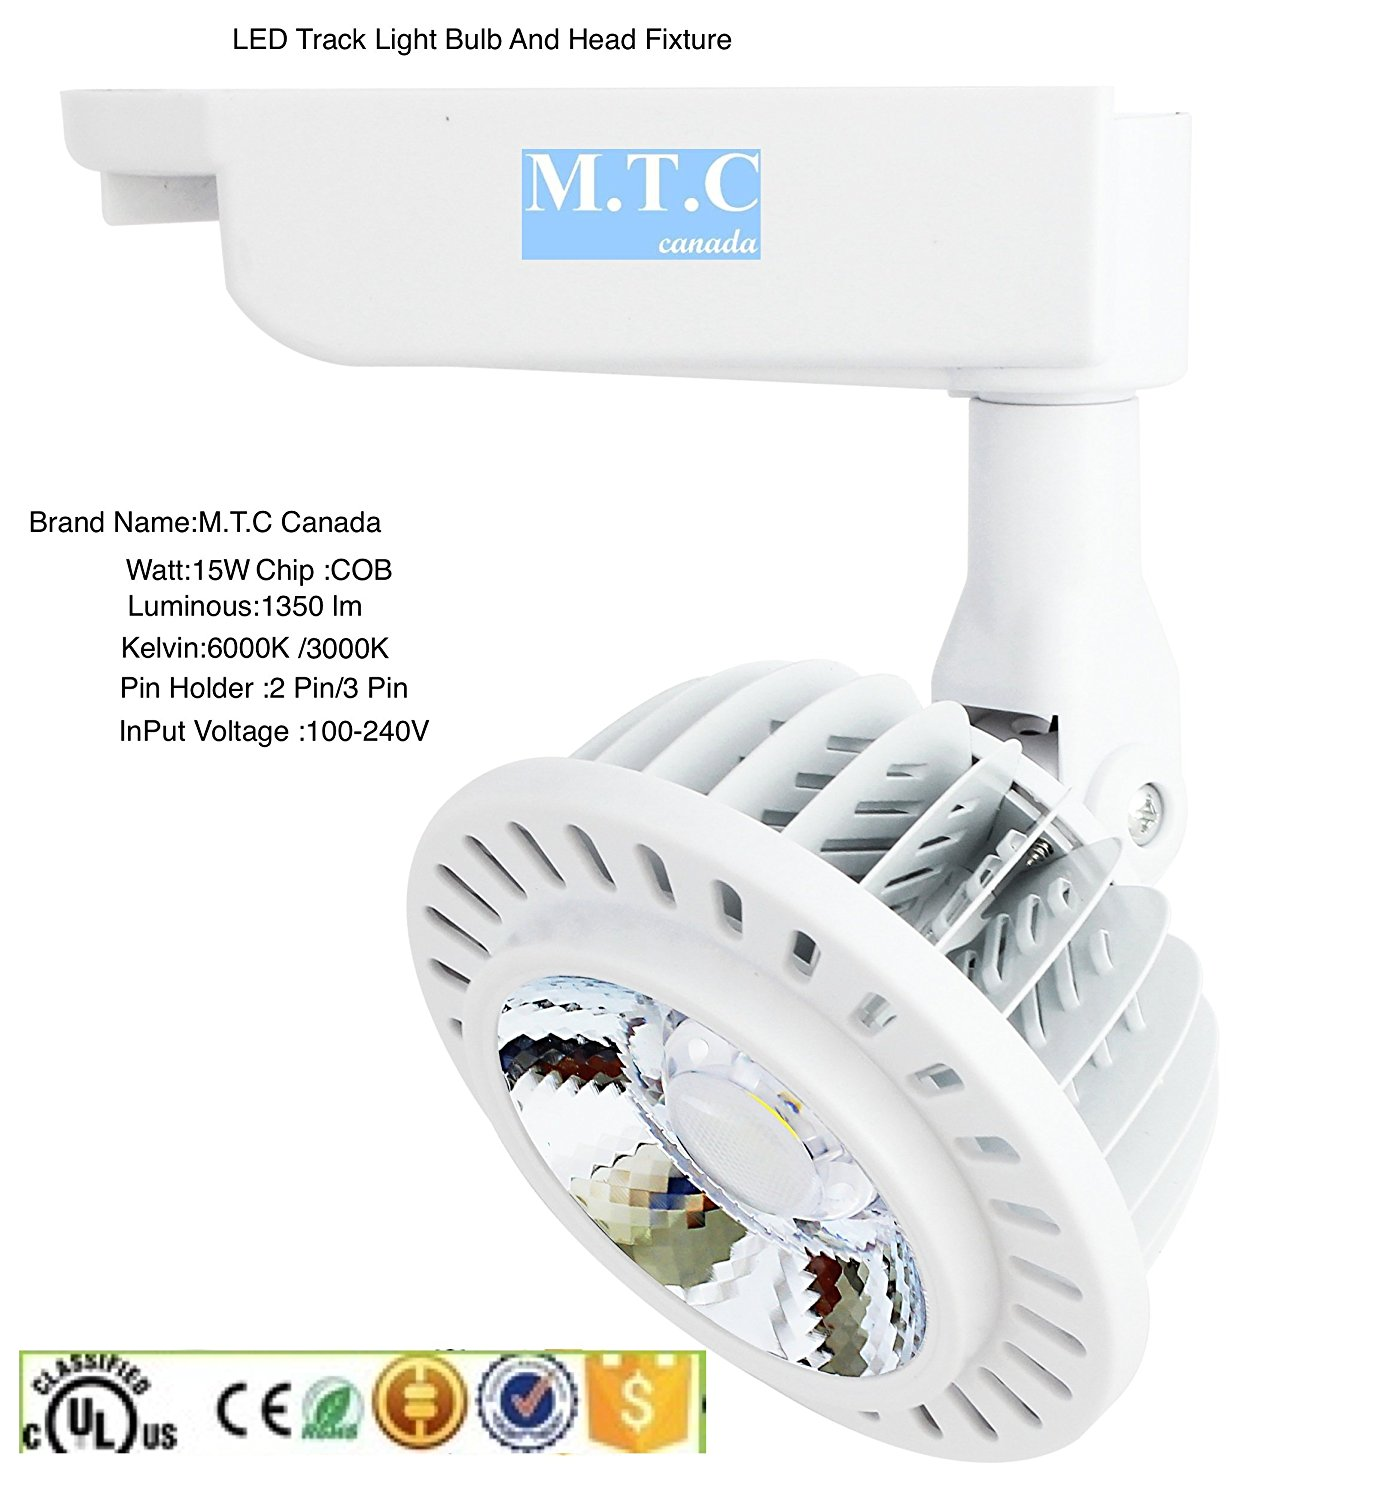 LED Track Light Fixture, Head And Bulb Complete kit 15W,For 3 Pin Track,COB Chip,Spot Light 1350Lm 6000K Cul Classified Pack of 10 Pcs=$250.00Cad,1 pcs= $25 Cad for Sale